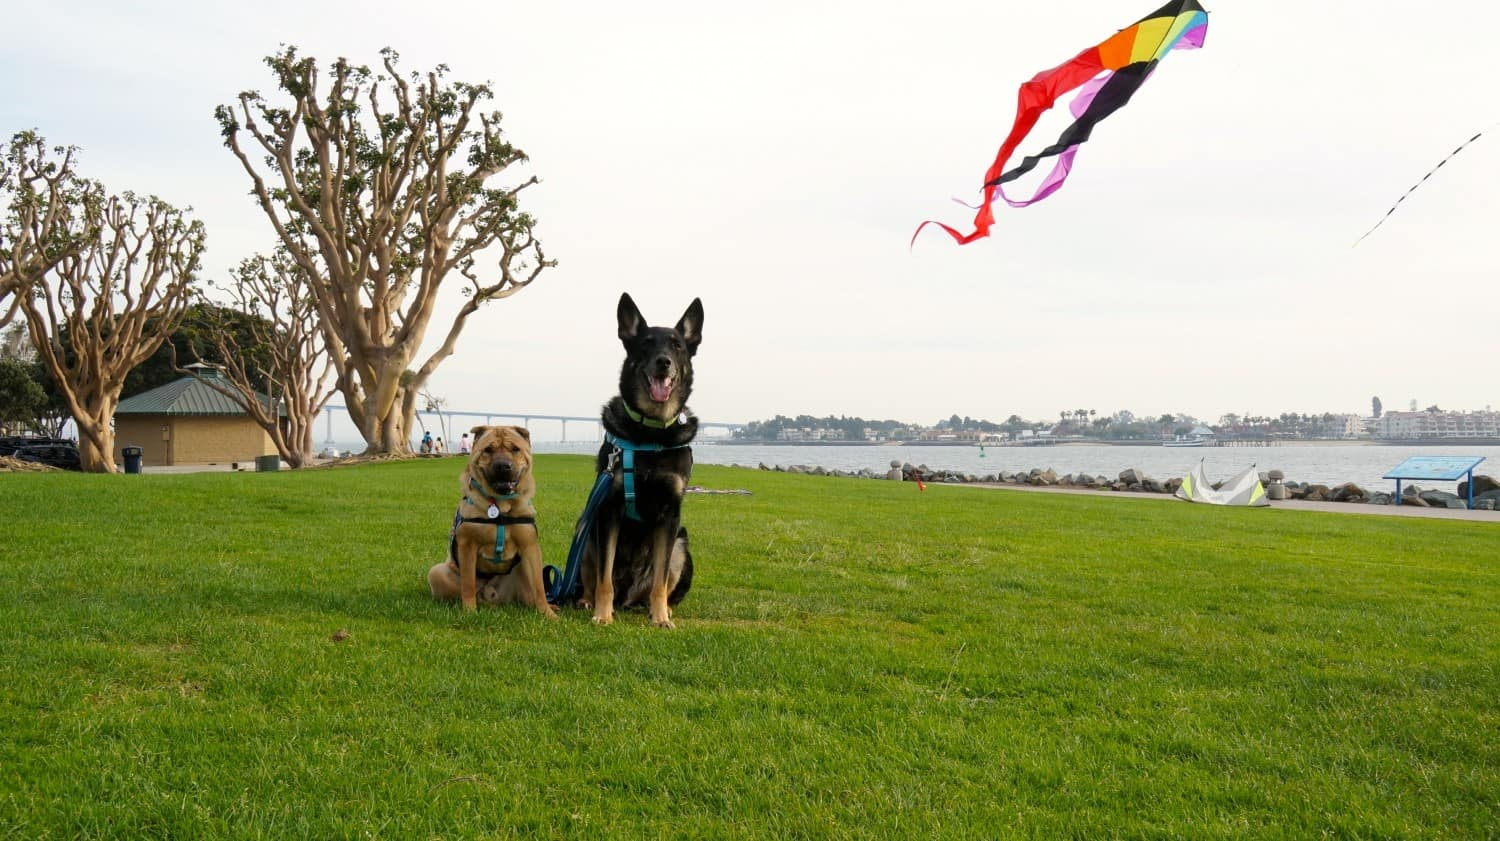 Dogs - Ty and Buster at Seaport Village - San Diego, CA